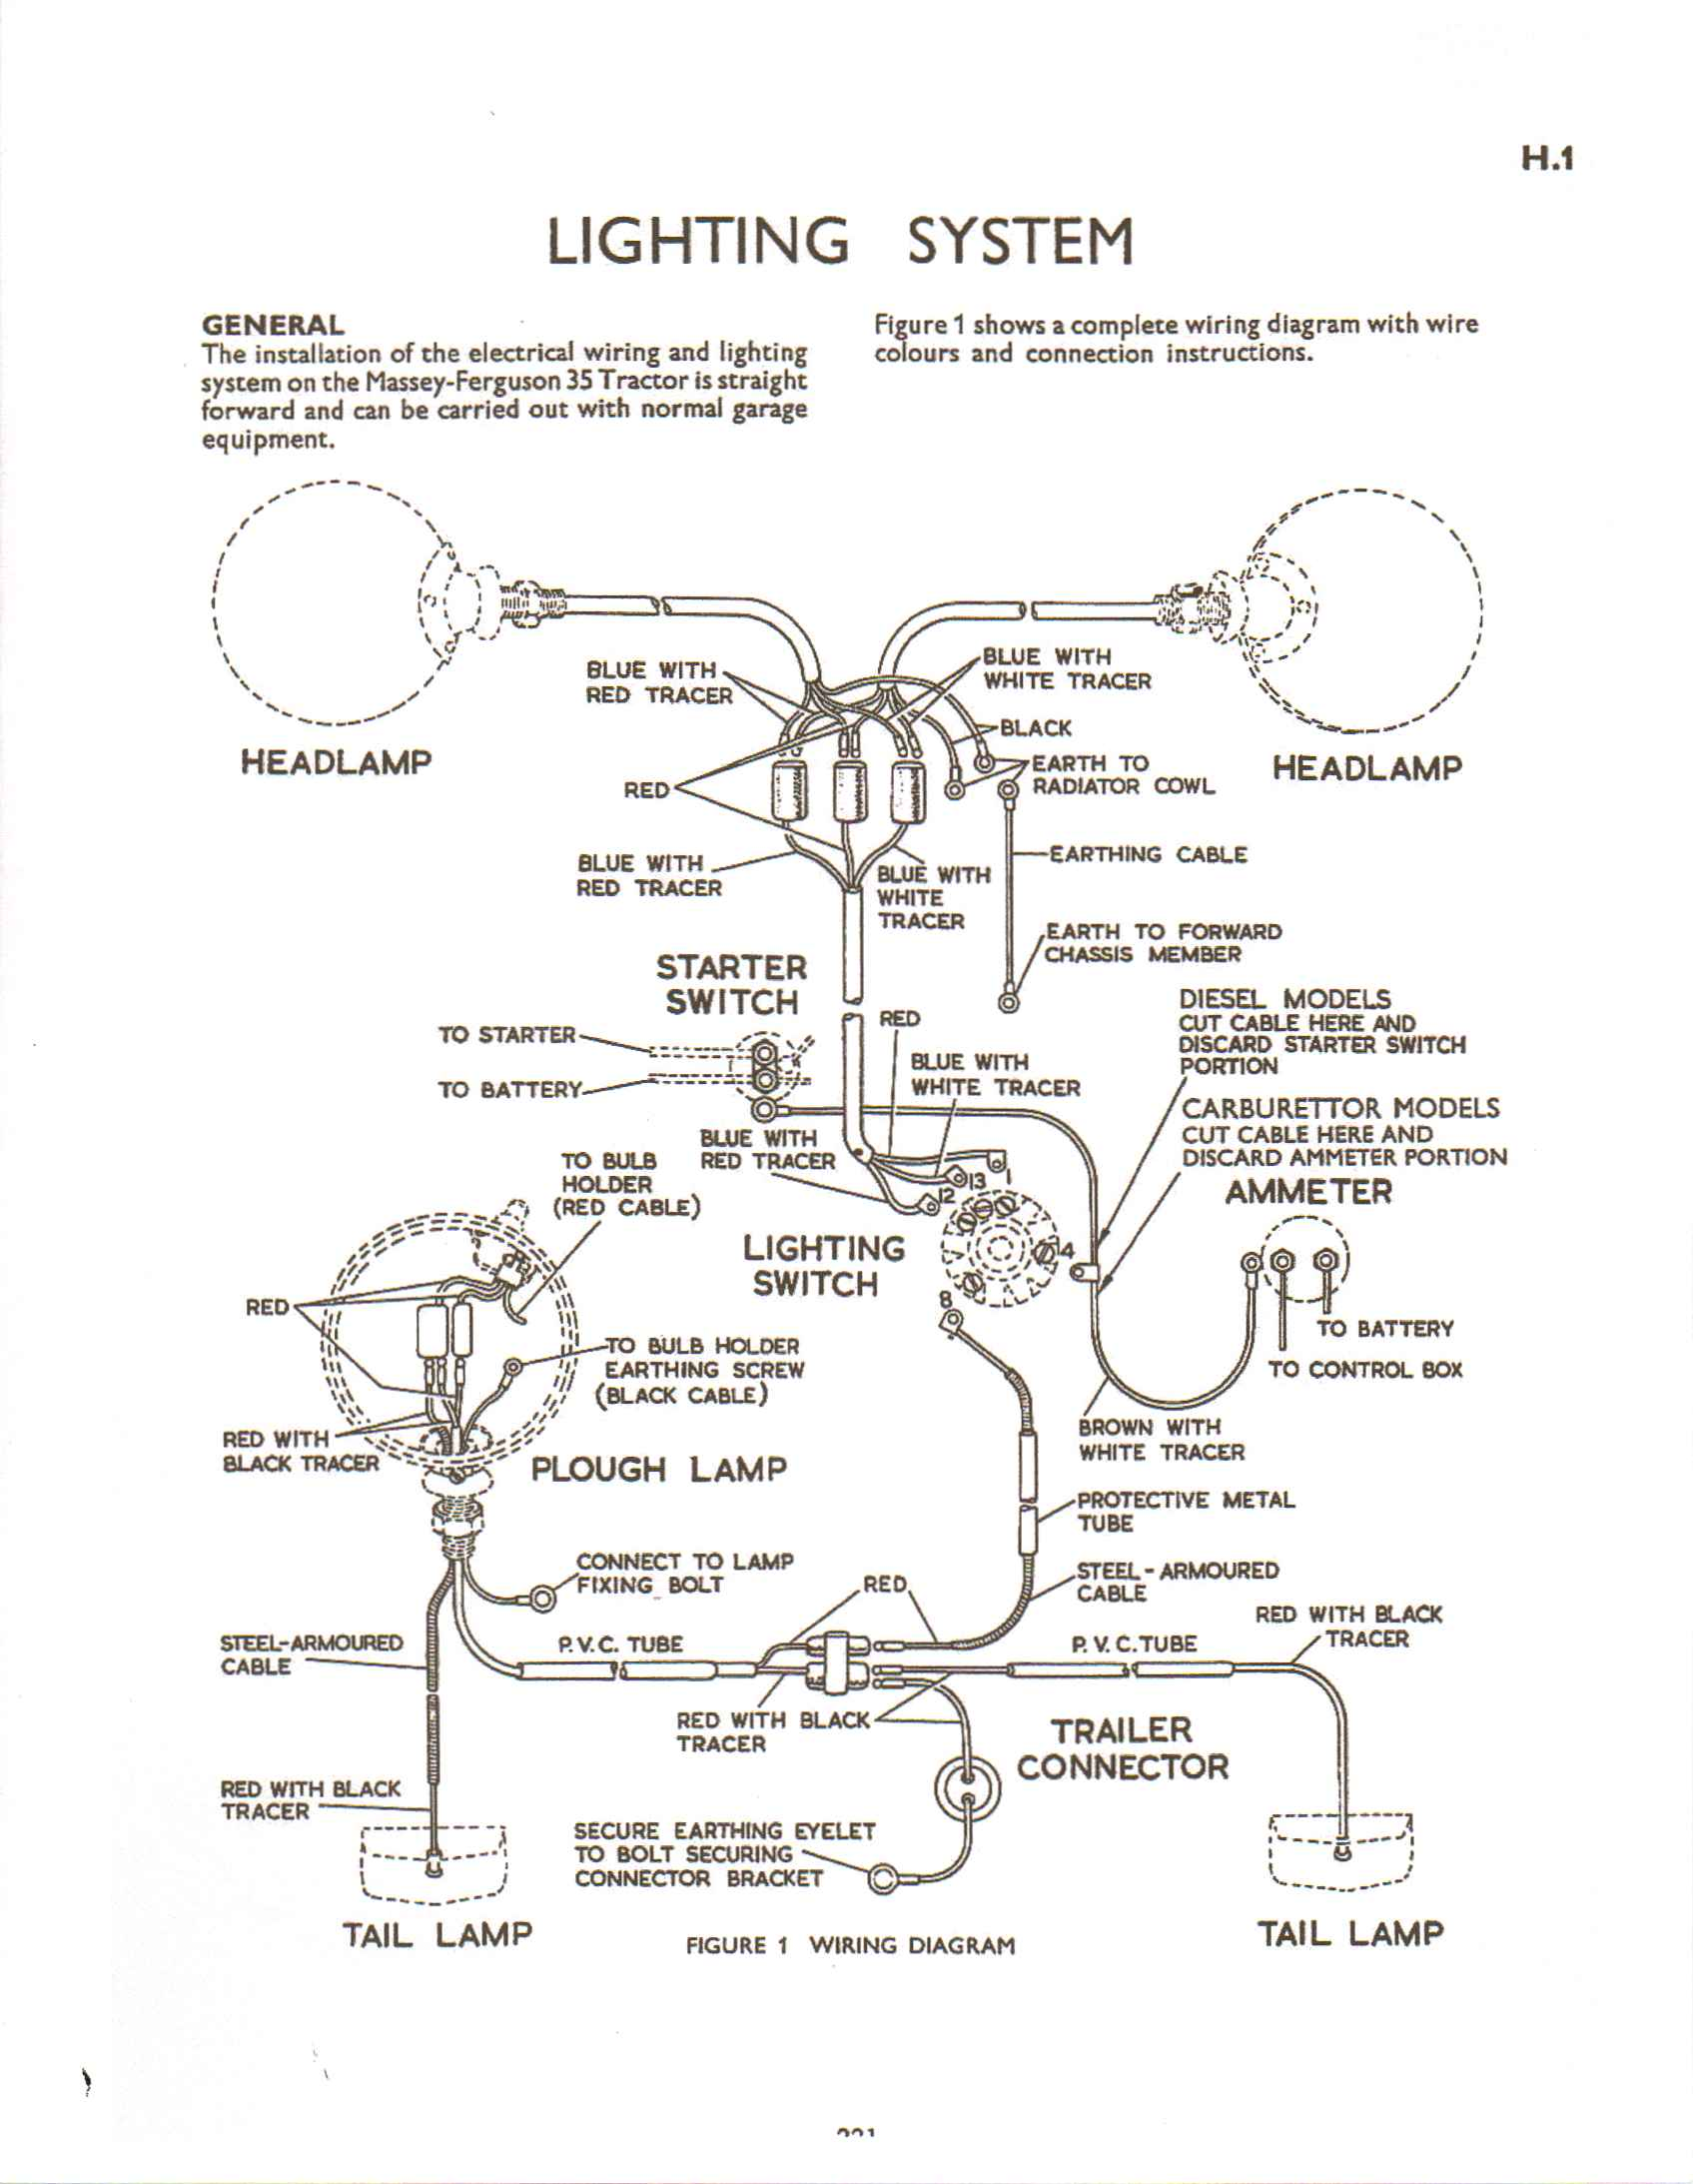 2011 06 20_132611_massey_35_lights massey ferguson 35 wiring diagram efcaviation com ferguson te20 wiring diagram at bakdesigns.co